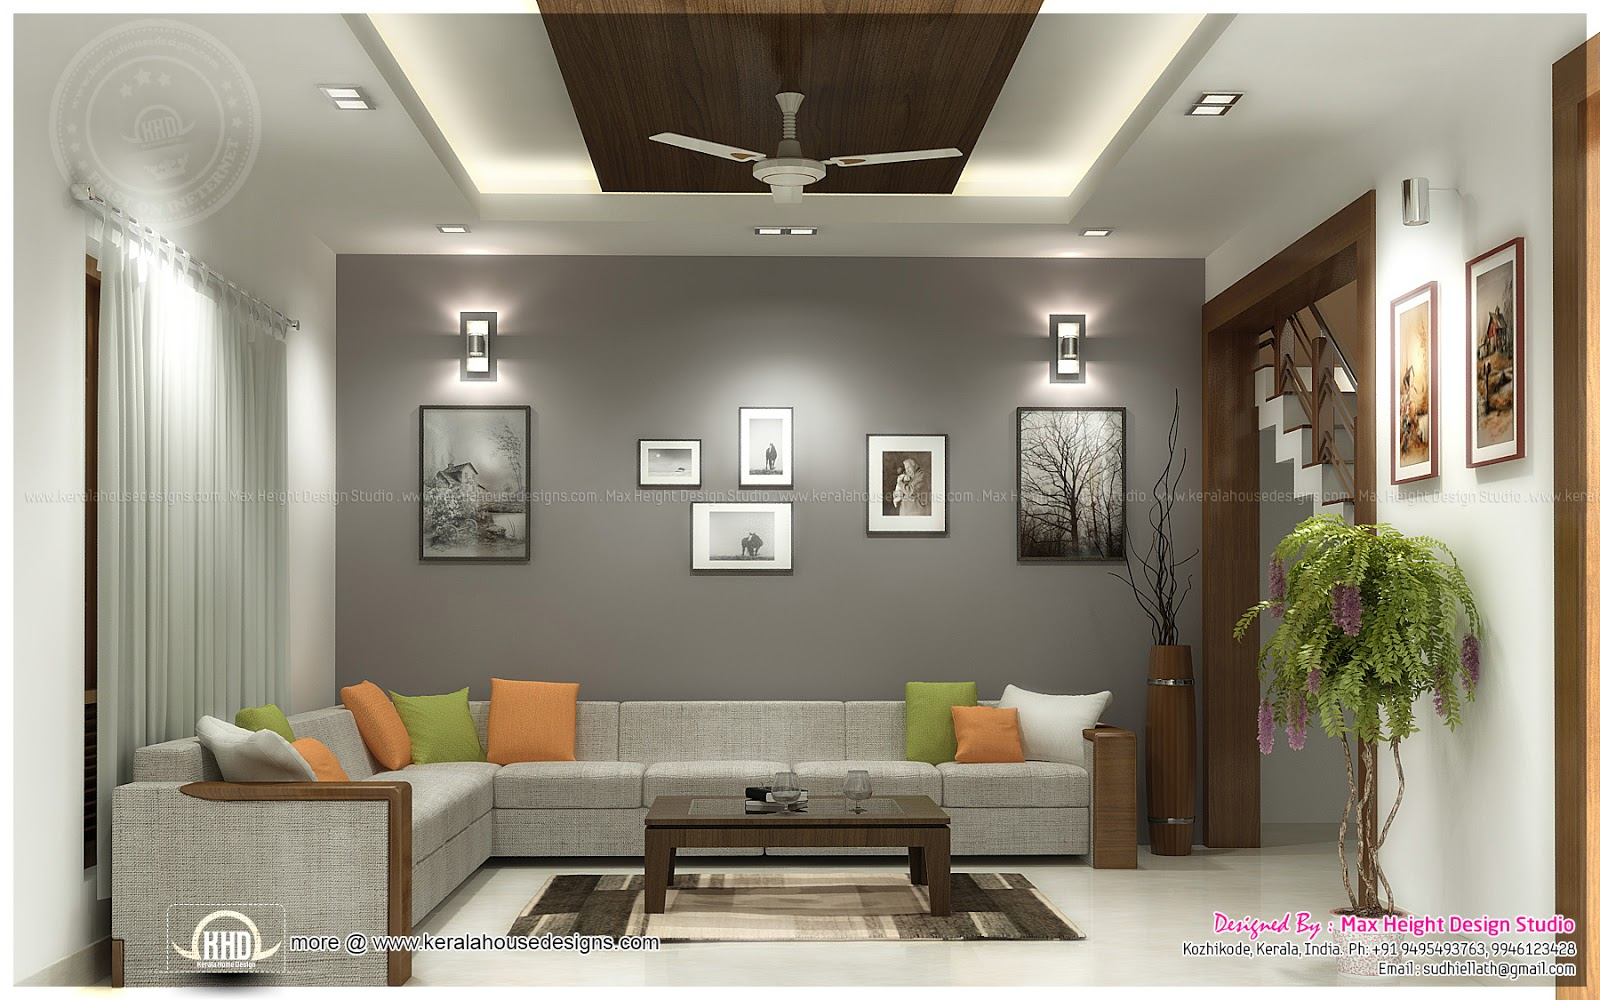 Beautiful interior ideas for home kerala home design and Pic of interior design home